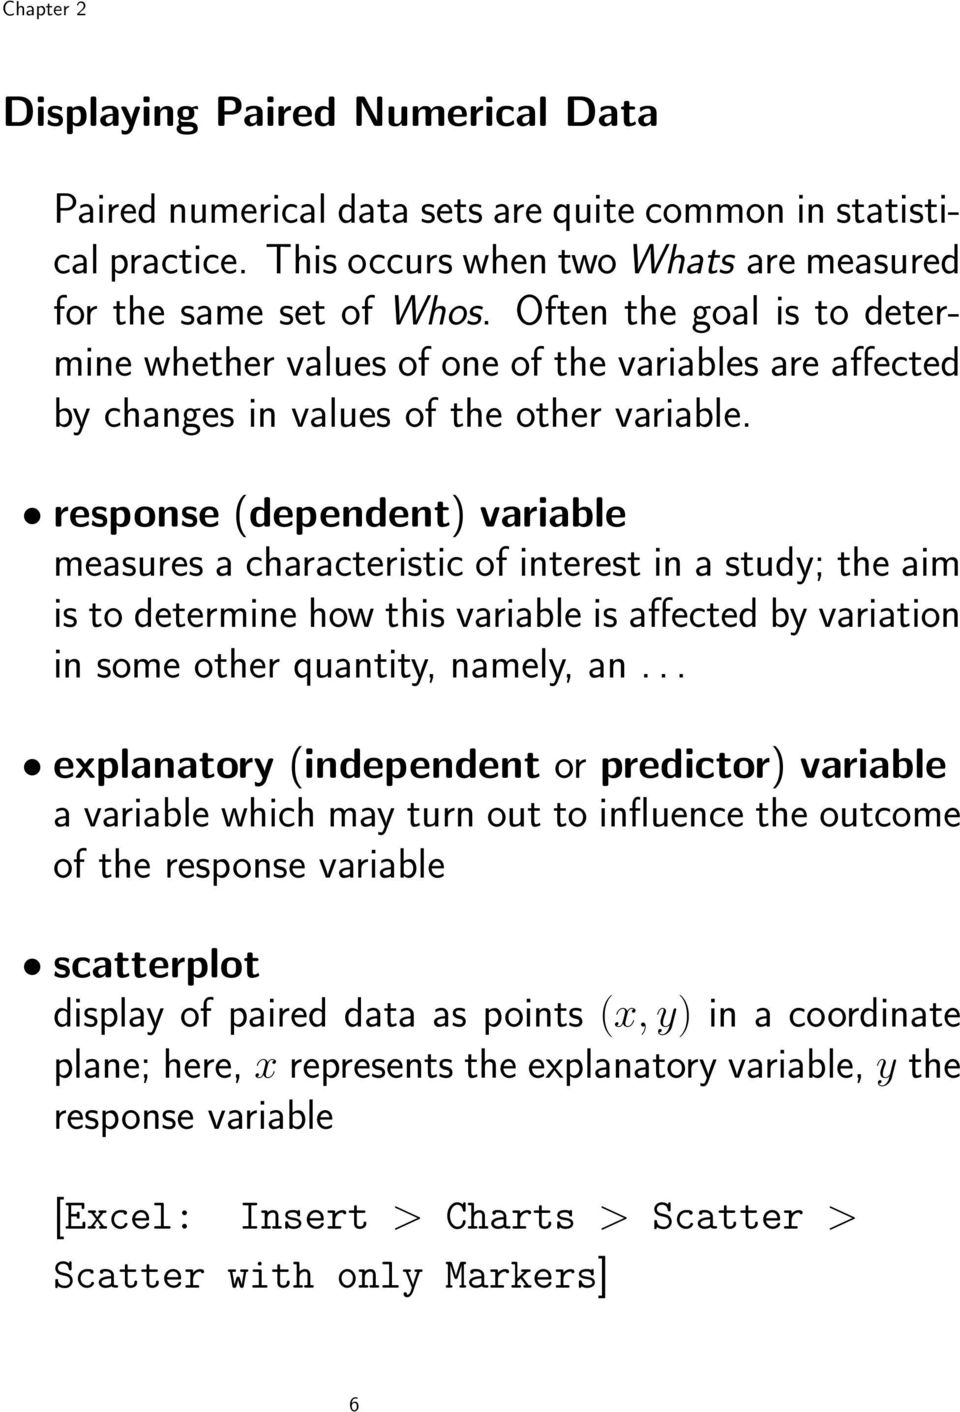 response (dependent) variable measures a characteristic of interest in a study; the aim is to determine how this variable is affected by variation in some other quantity, namely, an.